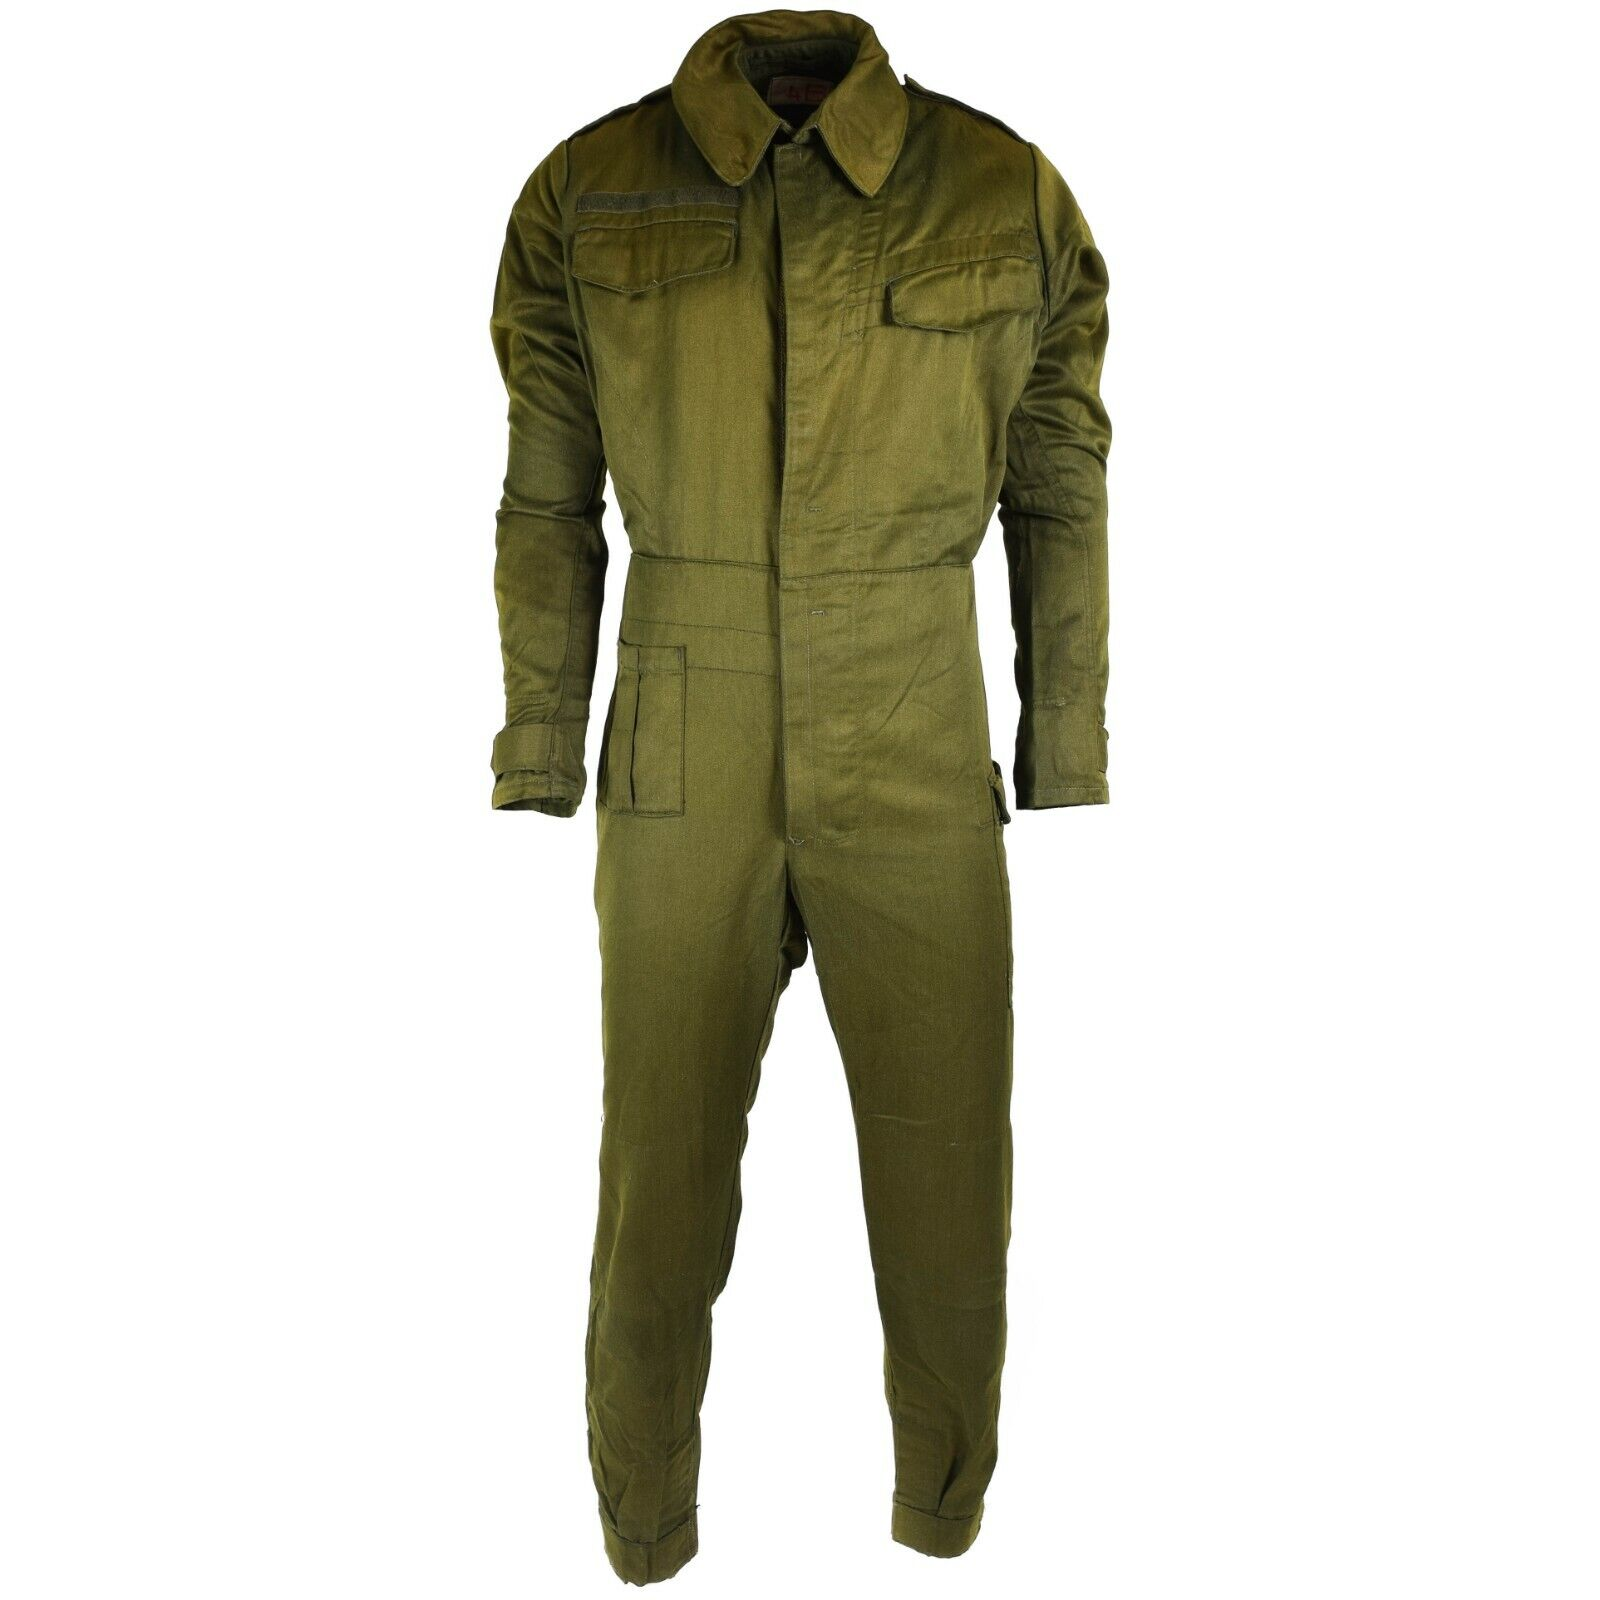 Coveralls vs jumpsuit ronseal anti slip decking stain